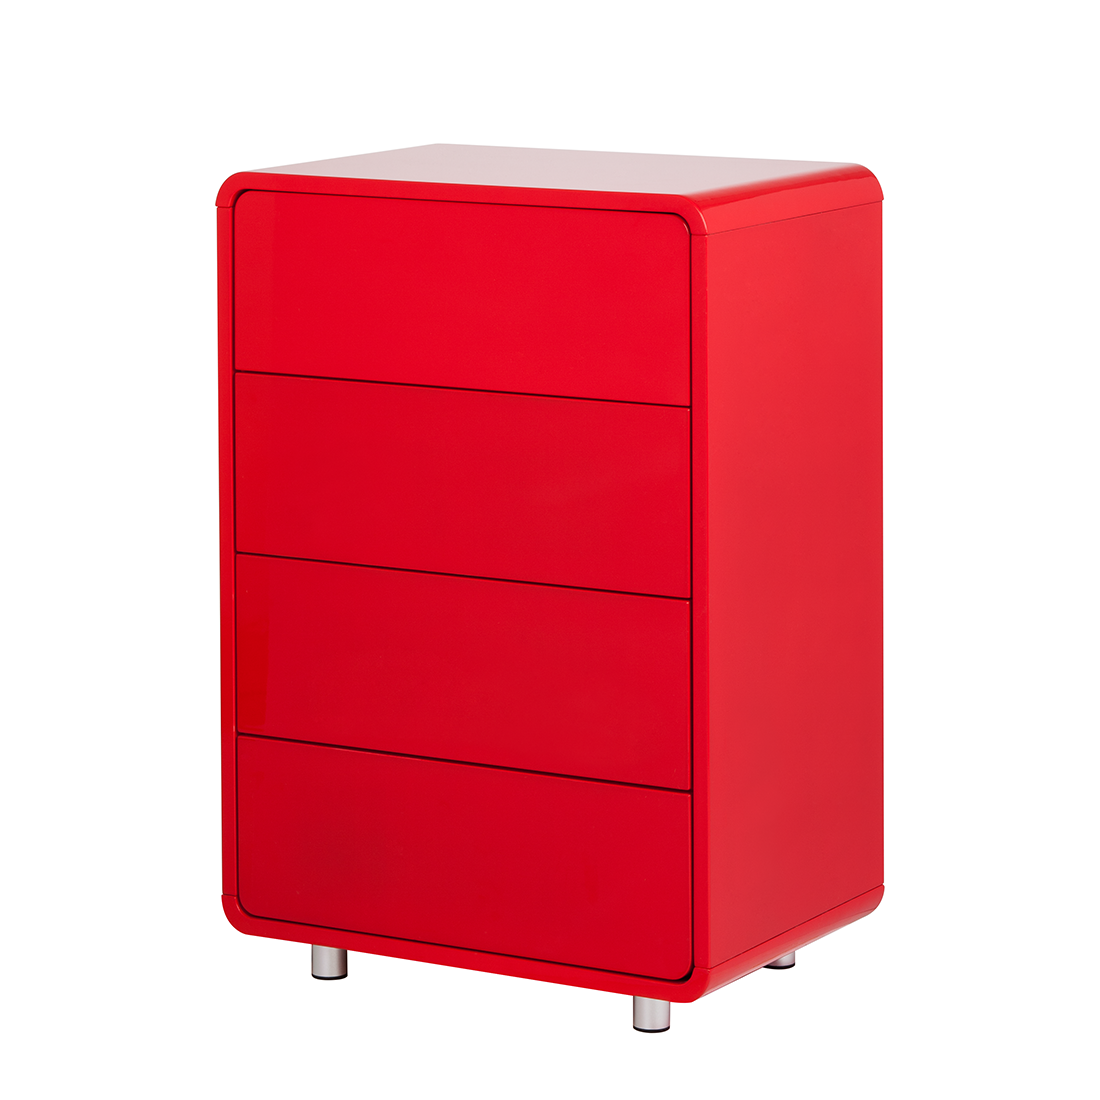 kommode 4 schubladen mdf rot hochglanz retro anrichte. Black Bedroom Furniture Sets. Home Design Ideas